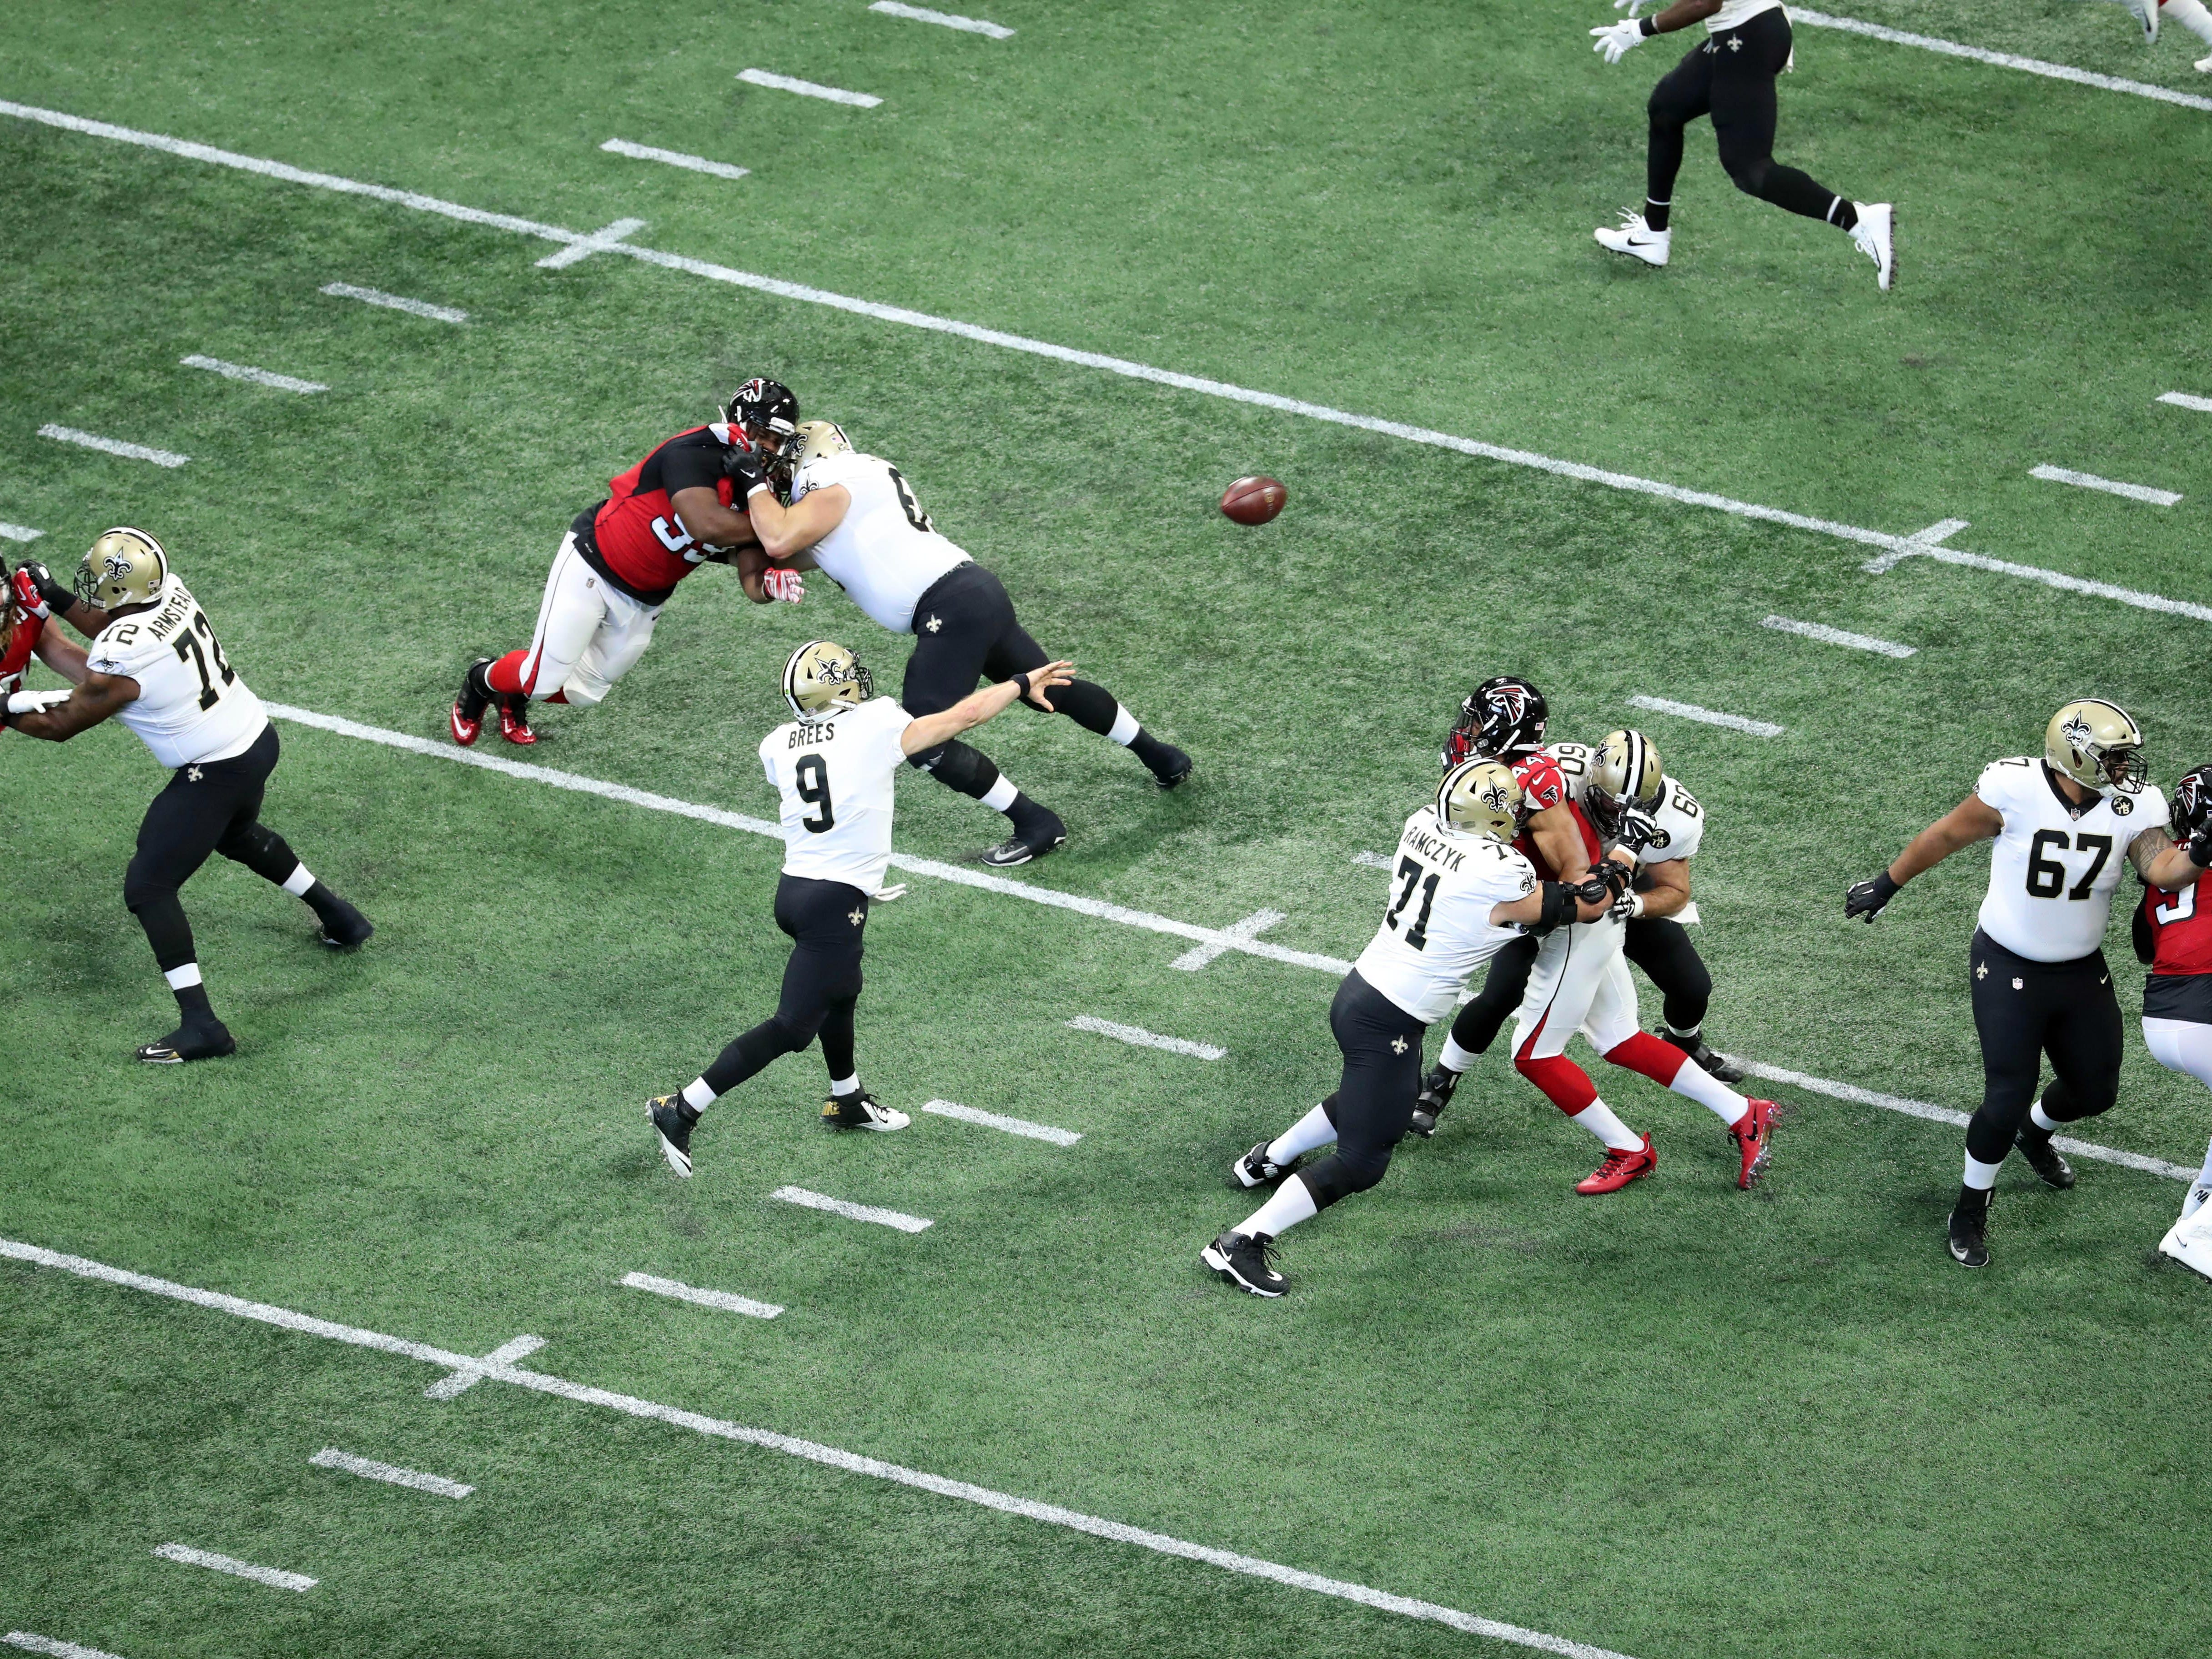 New Orleans Saints quarterback Drew Brees attempts a pass in the first quarter against the Atlanta Falcons at Mercedes-Benz Stadium.